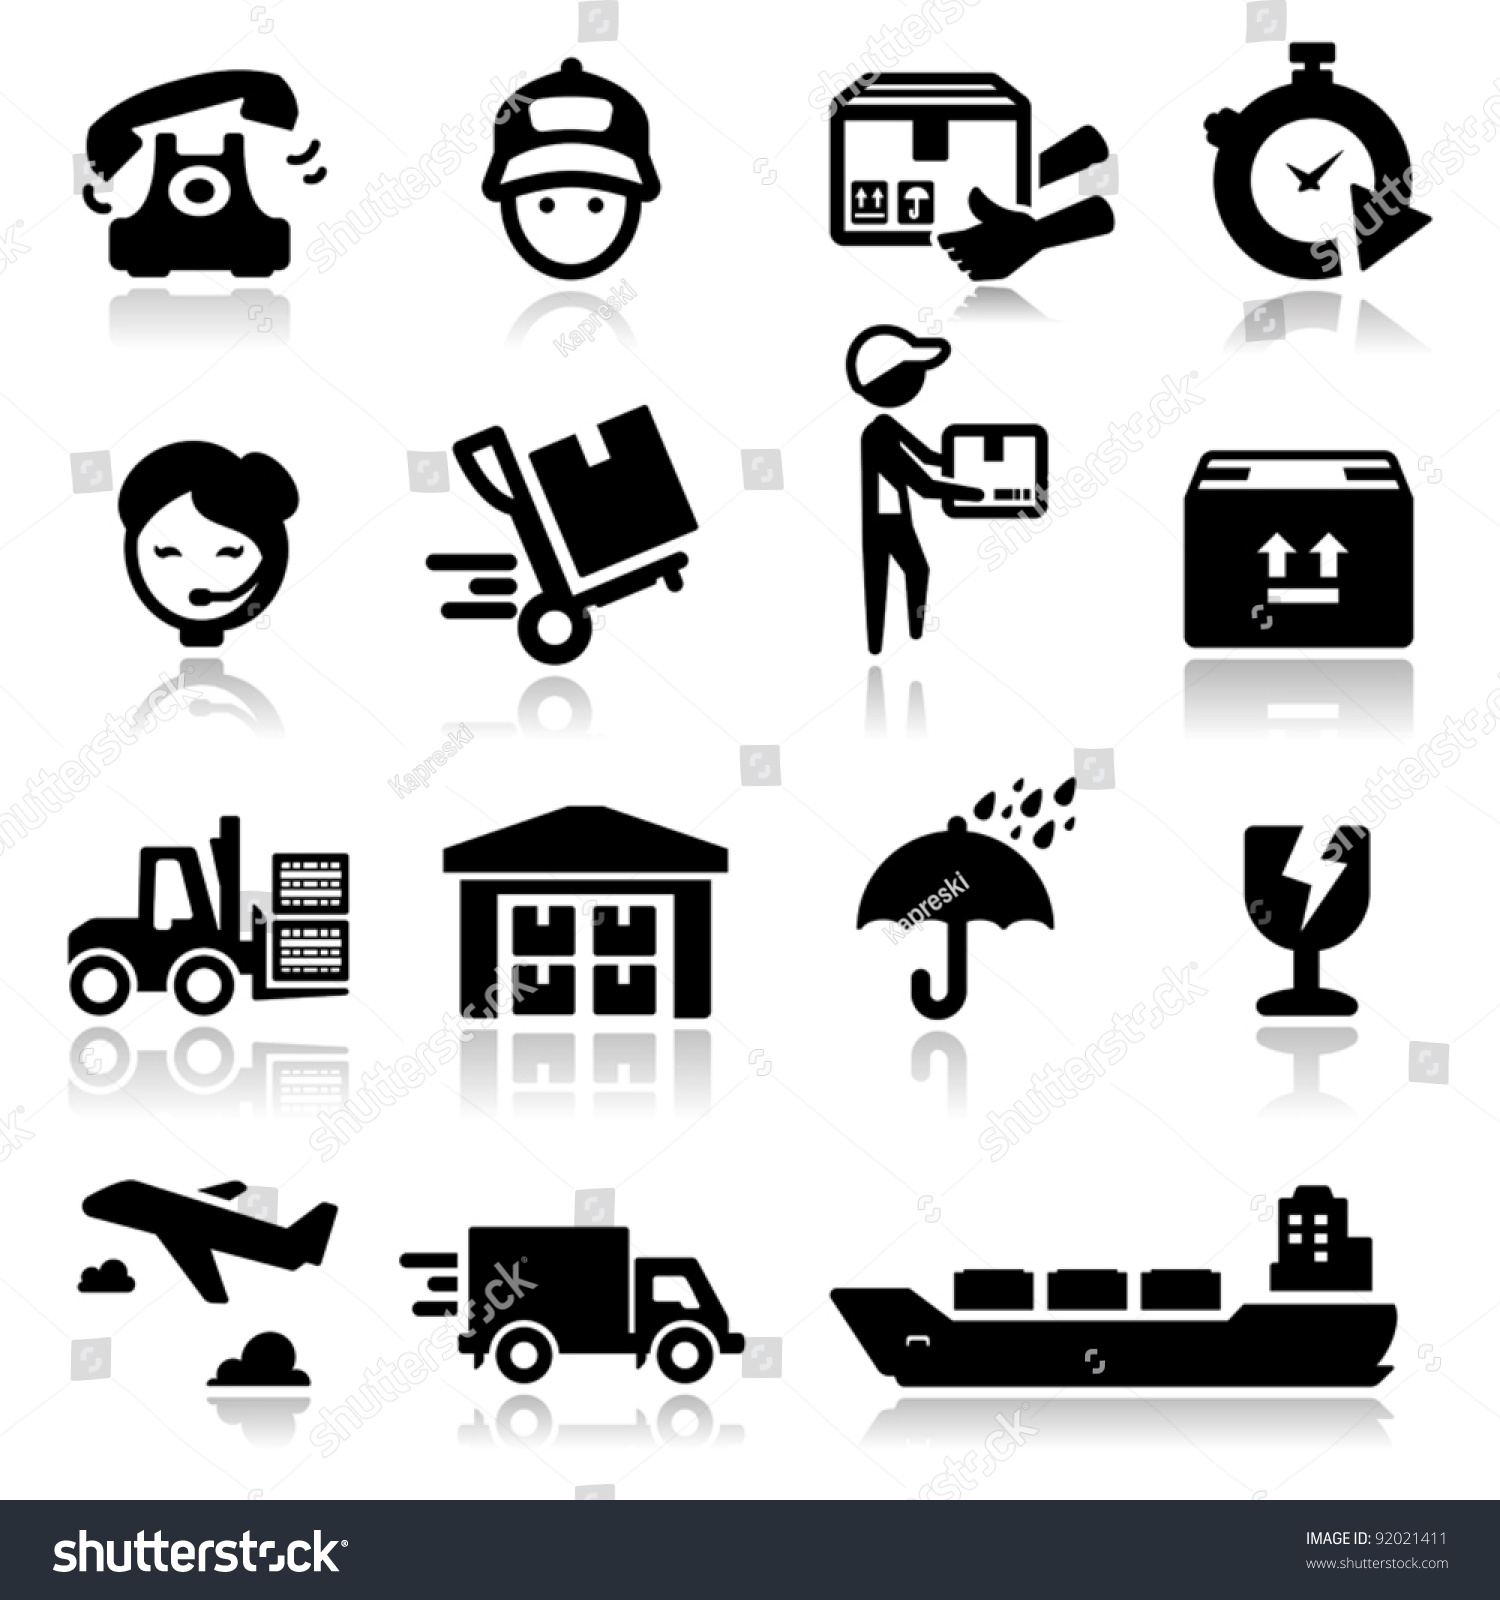 Shipping Delivery: Icons Set Shipping Delivery Stock Vector 92021411